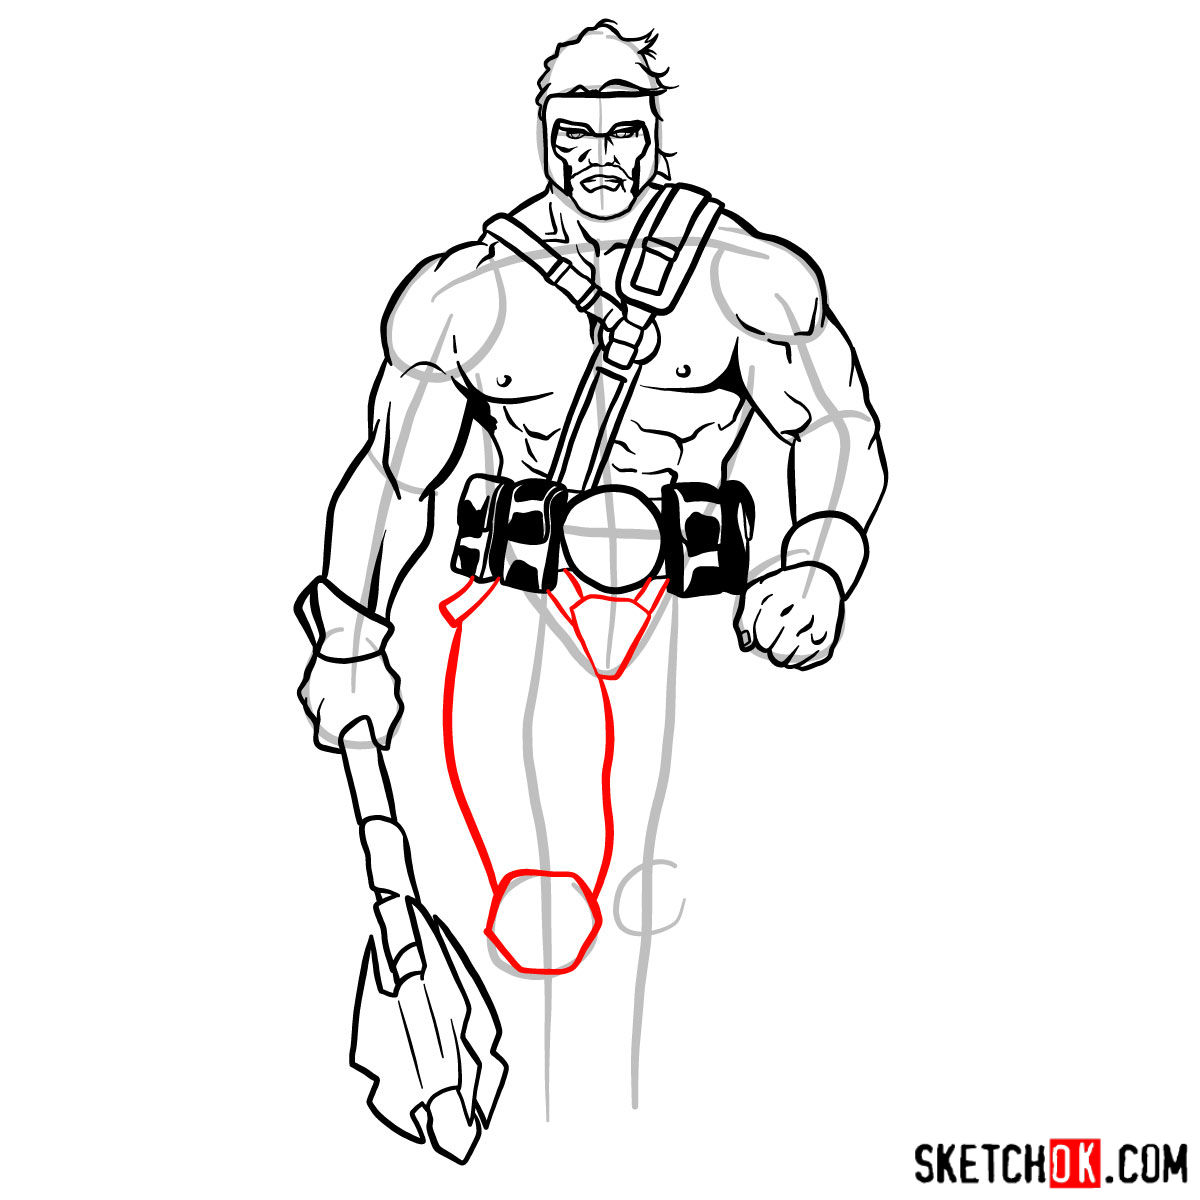 How to draw Hercules - Marvel Comics hero - step 11